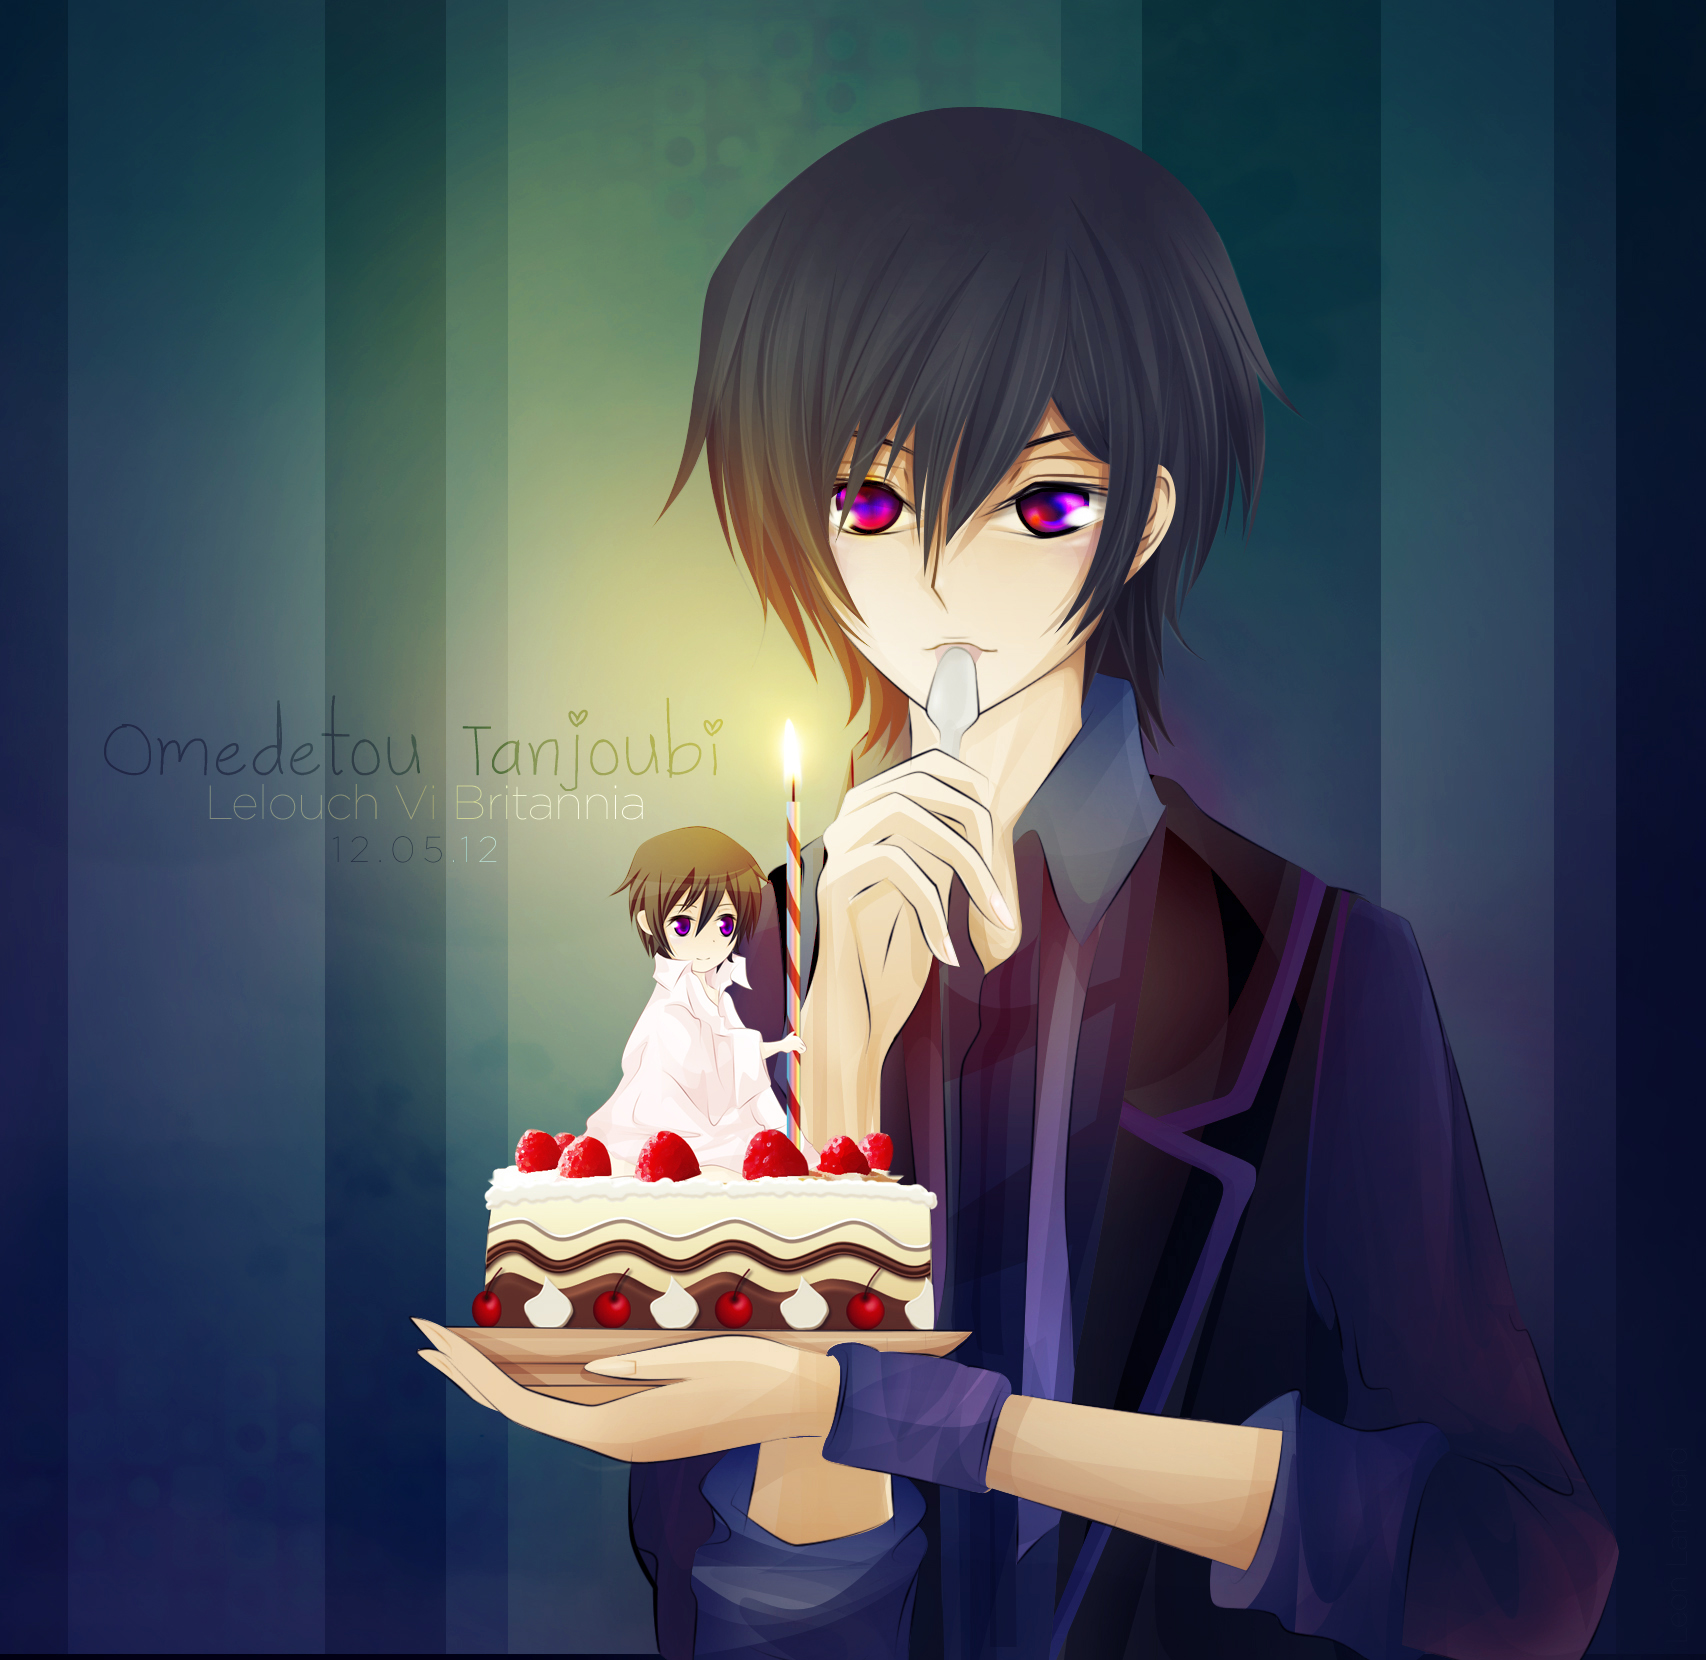 Happy Birthday Lelouch! by LeonLampard on DeviantArt